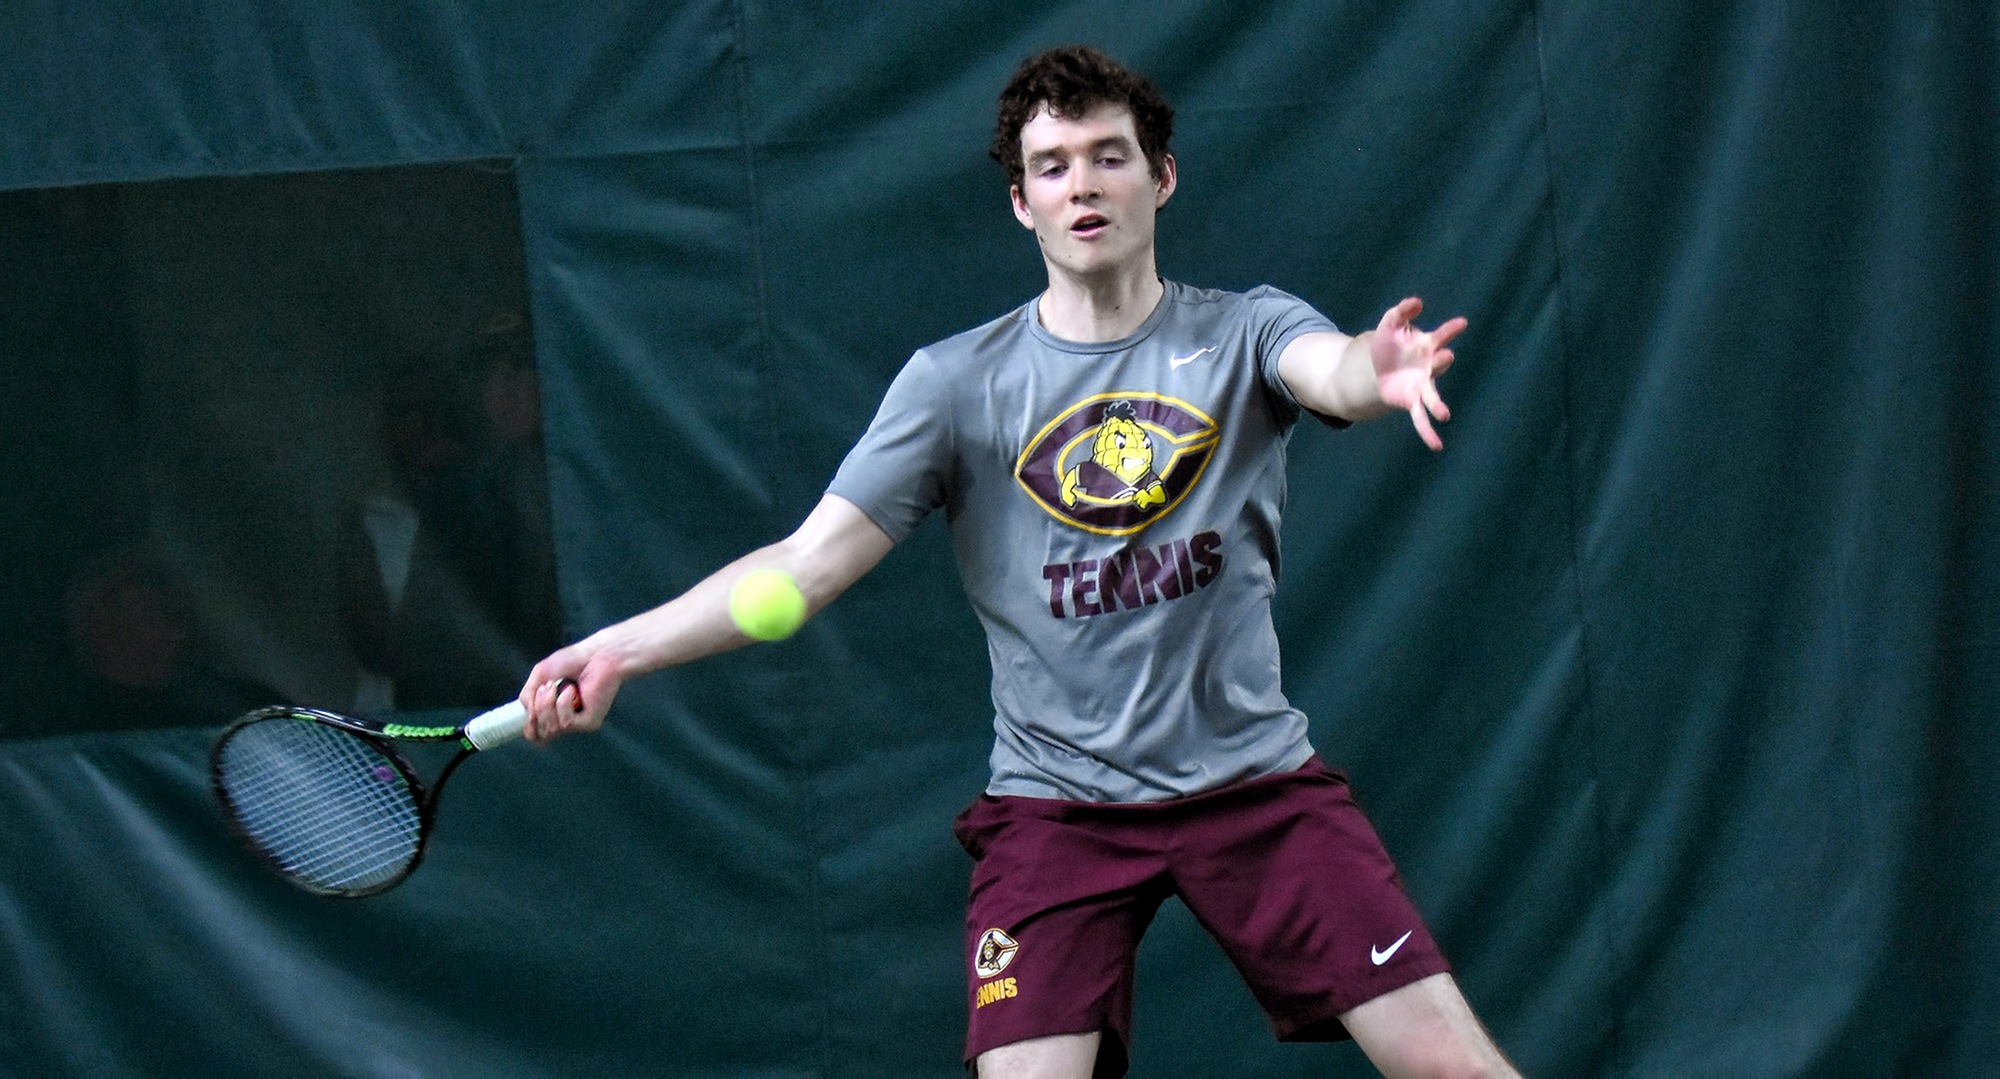 Senior Erik Porter won both of his doubles matches on the opening day of matches in Florida for the Cobbers.